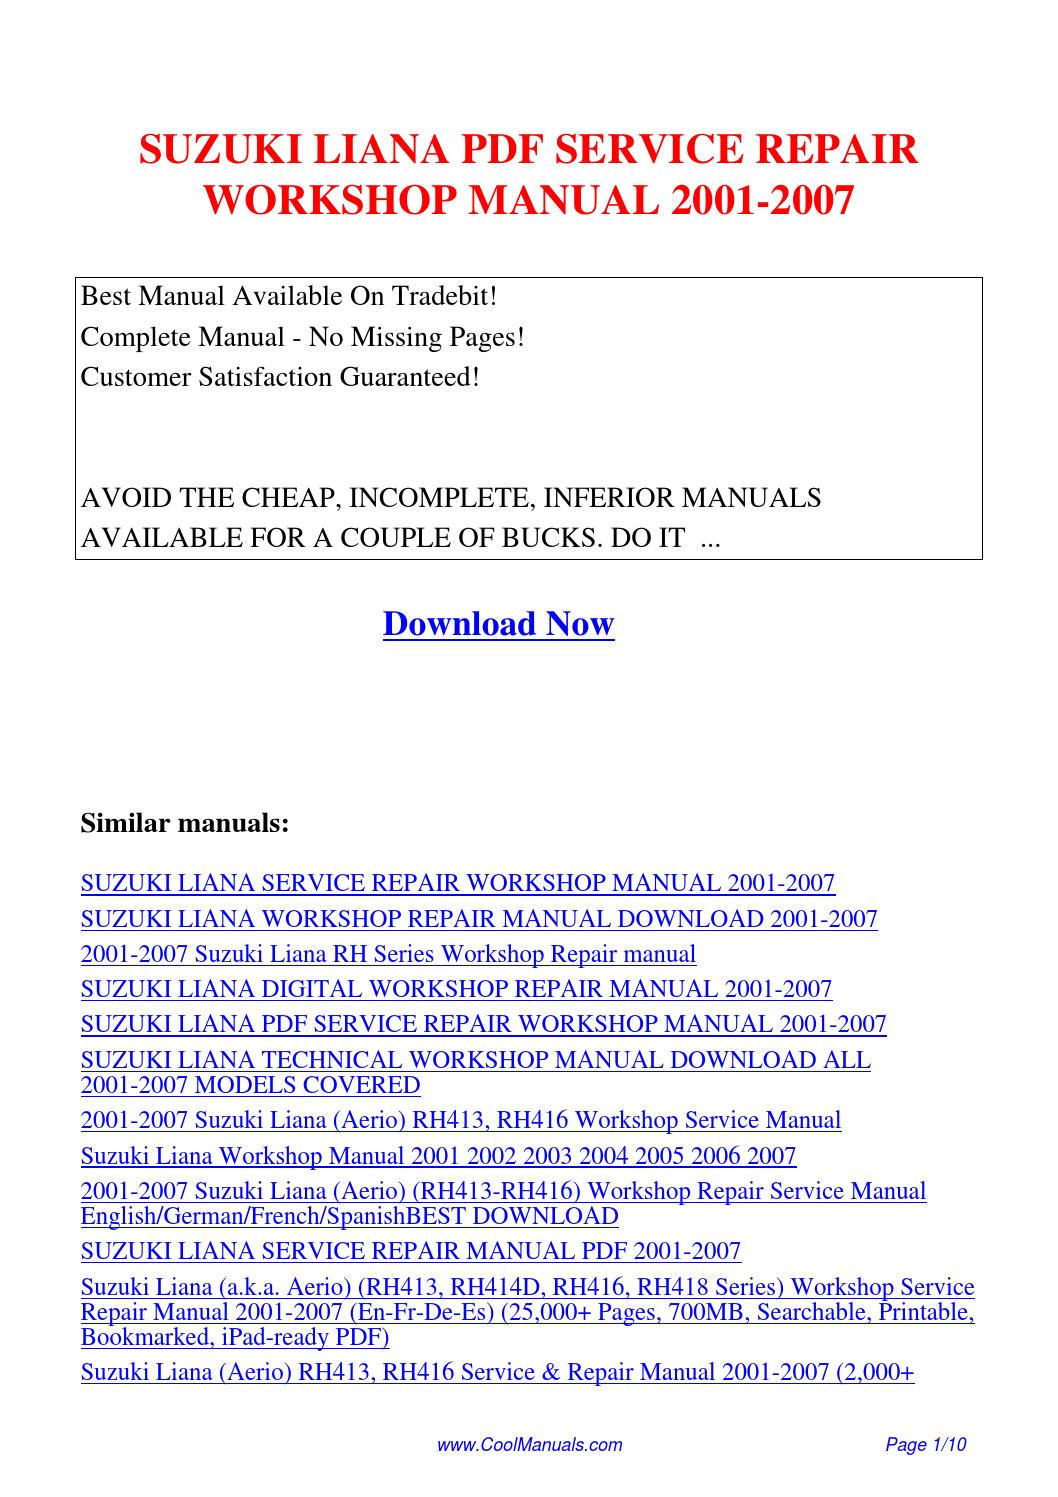 SUZUKI LIANA SERVICE REPAIR WORKSHOP MANUAL 2001-2007.pdf by Linda Pong -  issuu